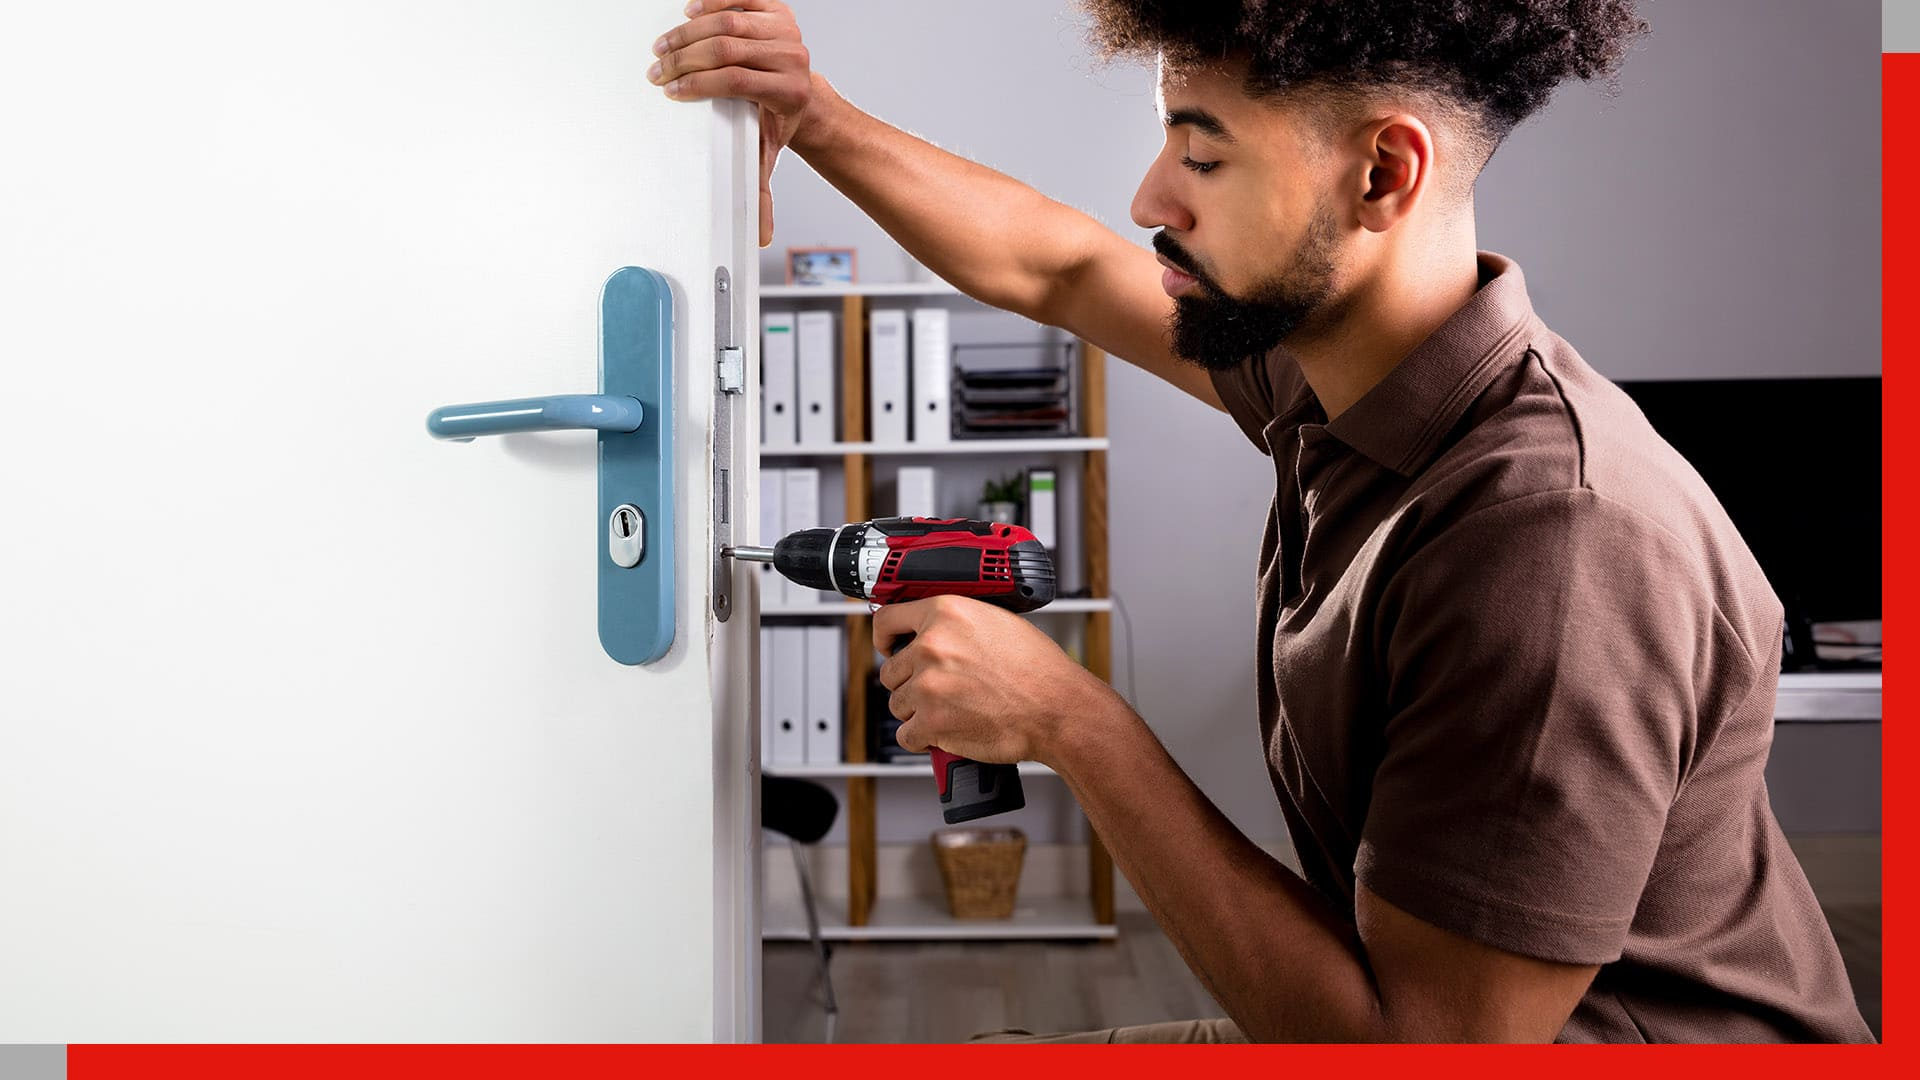 Commercial Locksmith Services in San Diego County